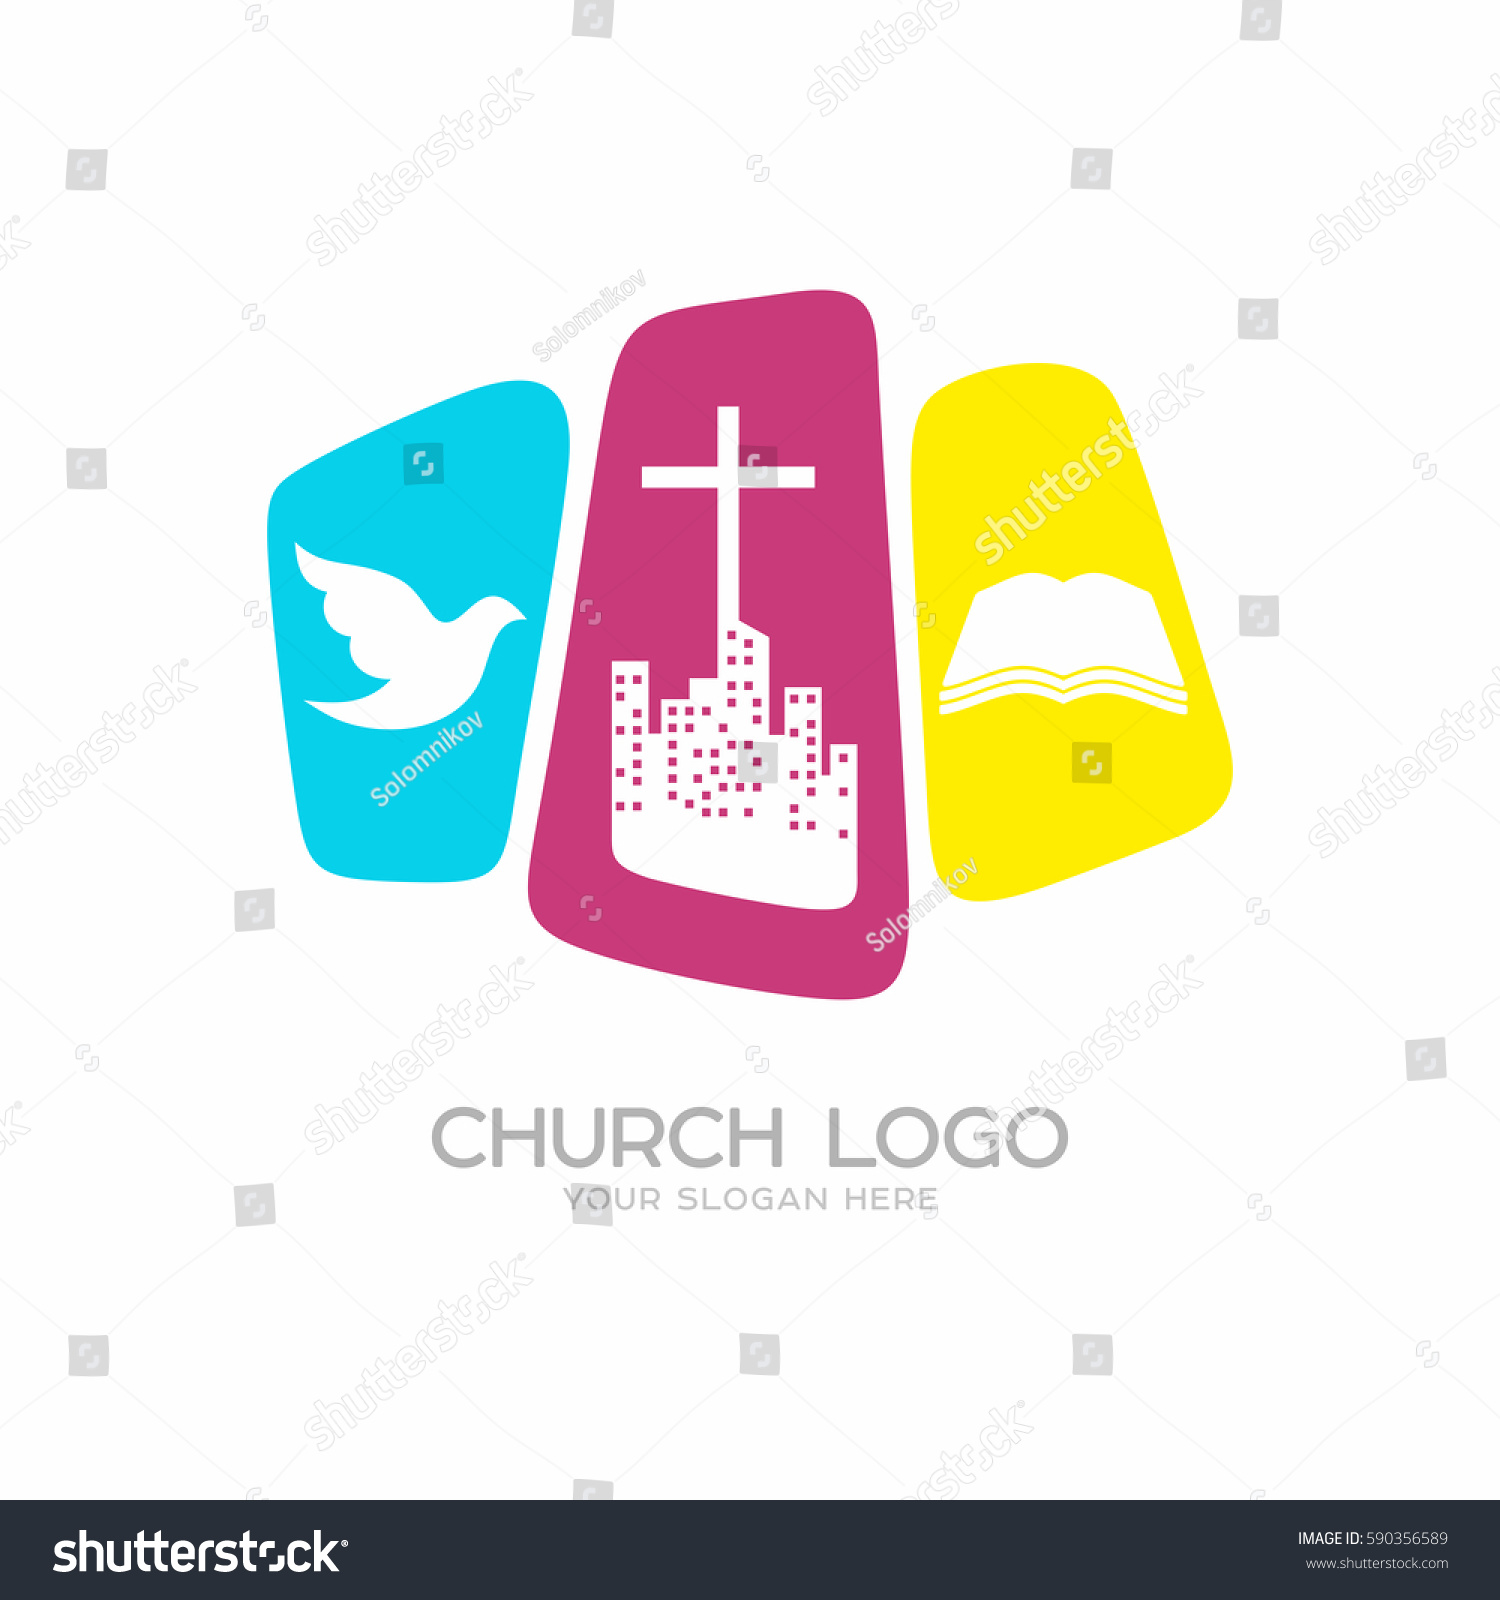 Church Logo Christian Symbols City Cross Stock Vector (Royalty Free ...